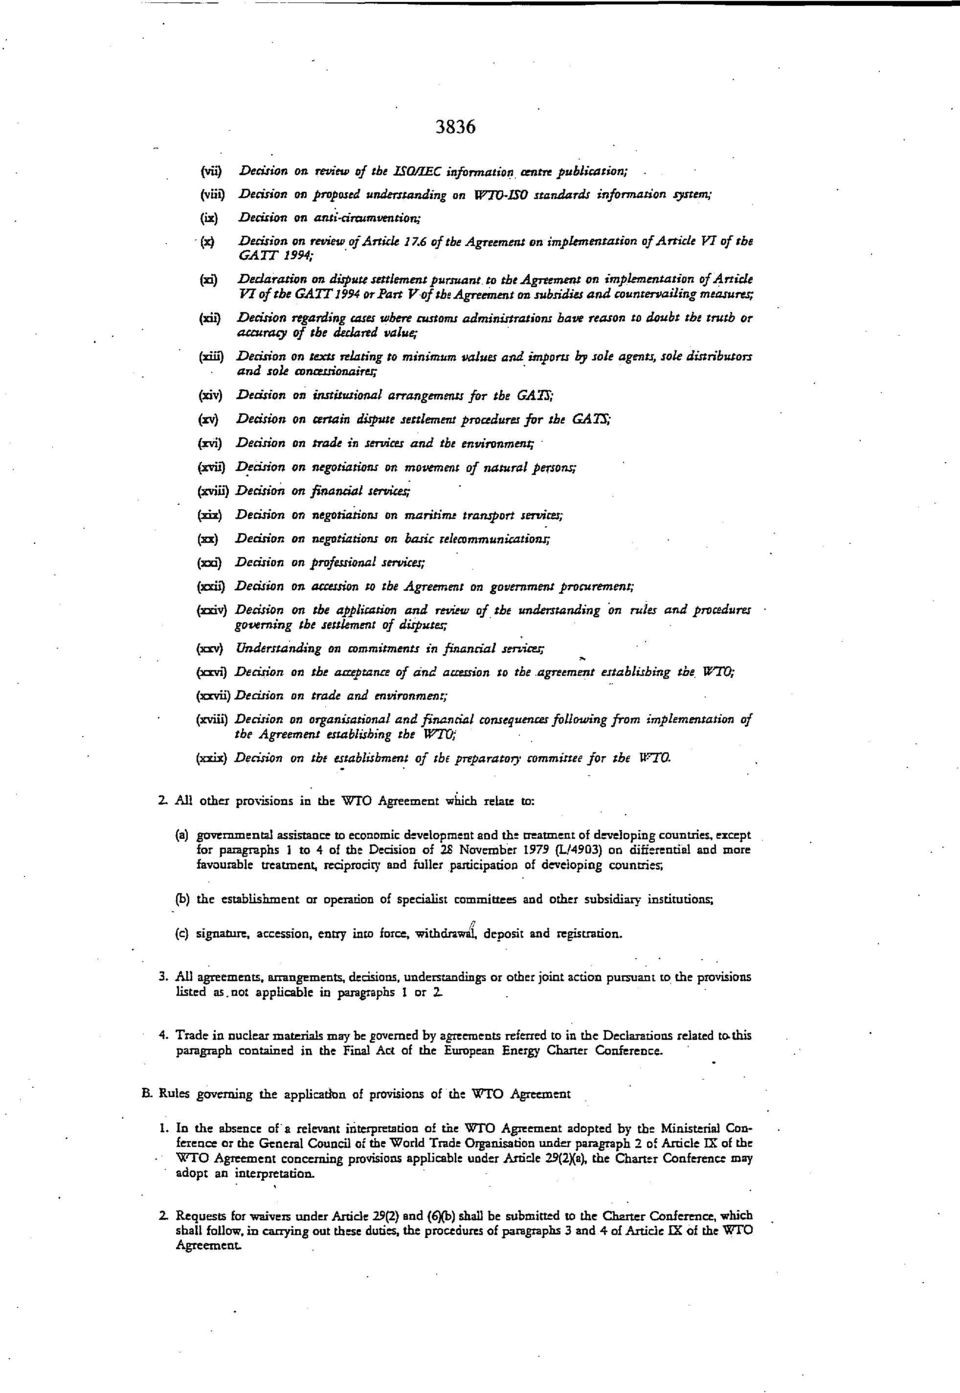 6 of the Agreement on implementation of Article VI ofthe GATT 1994; Declaration on dispute settlement pursuant, to the Agreement on implementation of Article VI of the GATT 1994 or Part V of the